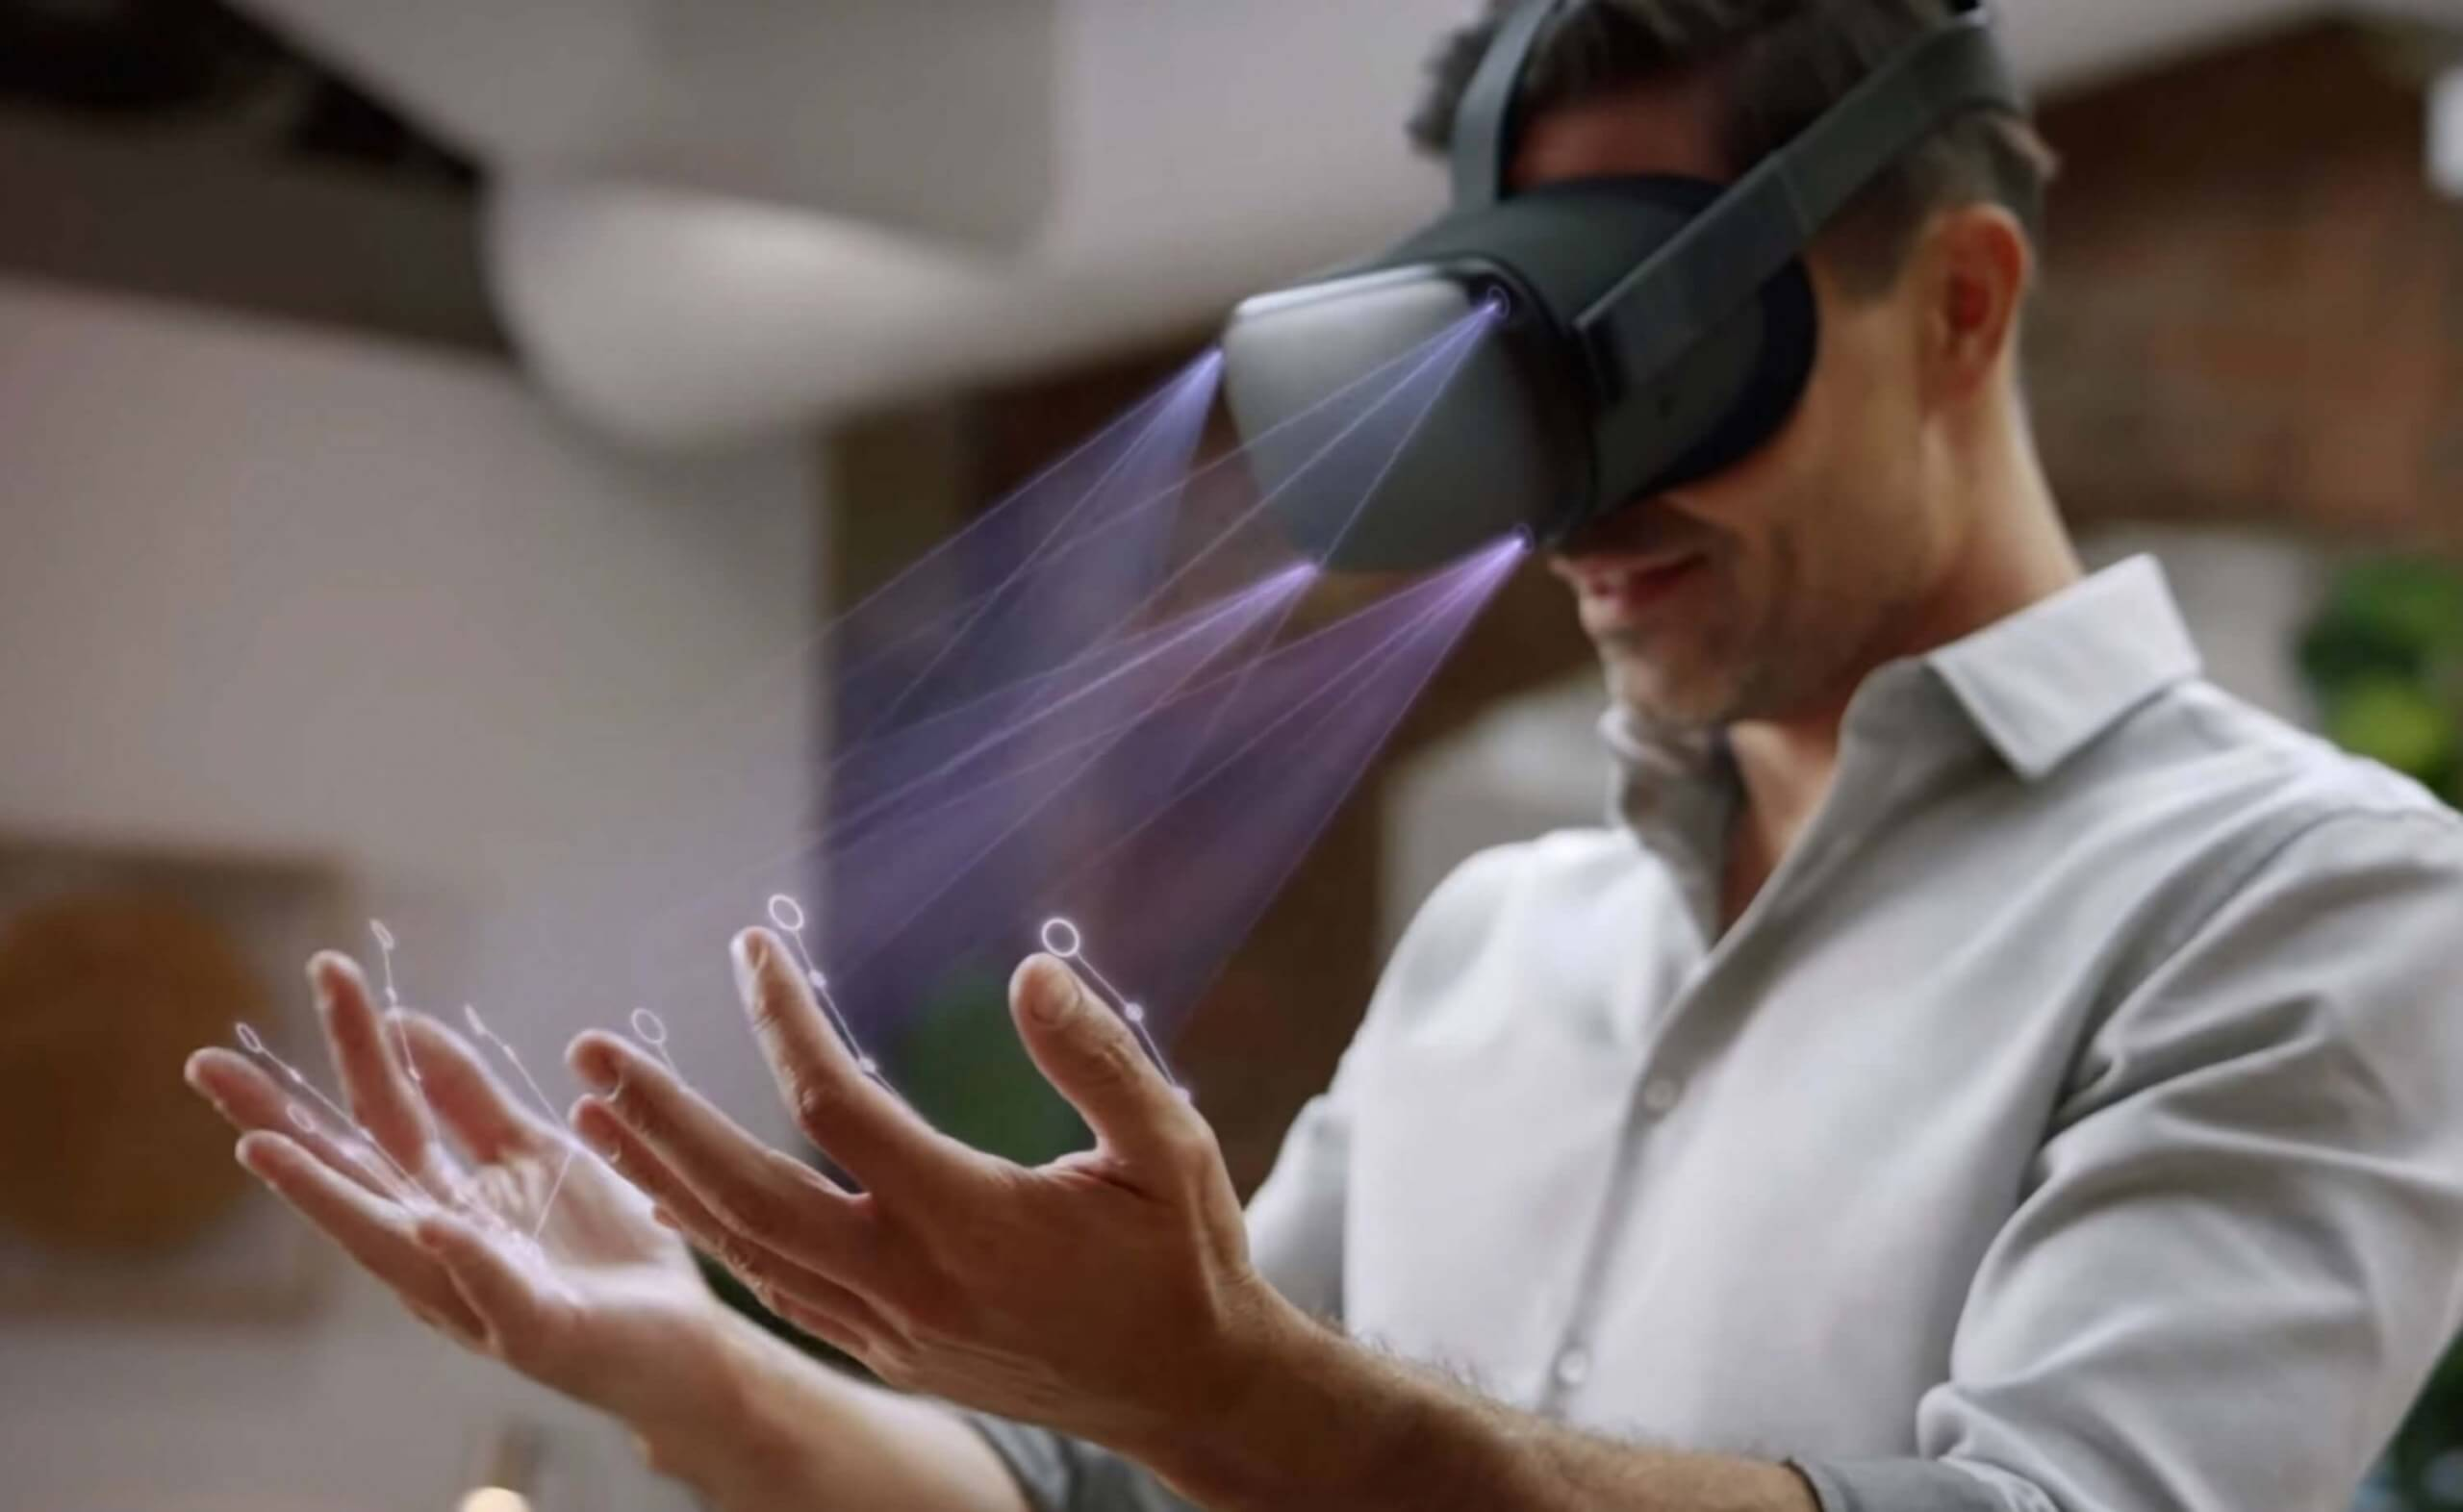 Oculus Quest gets hand tracking this week